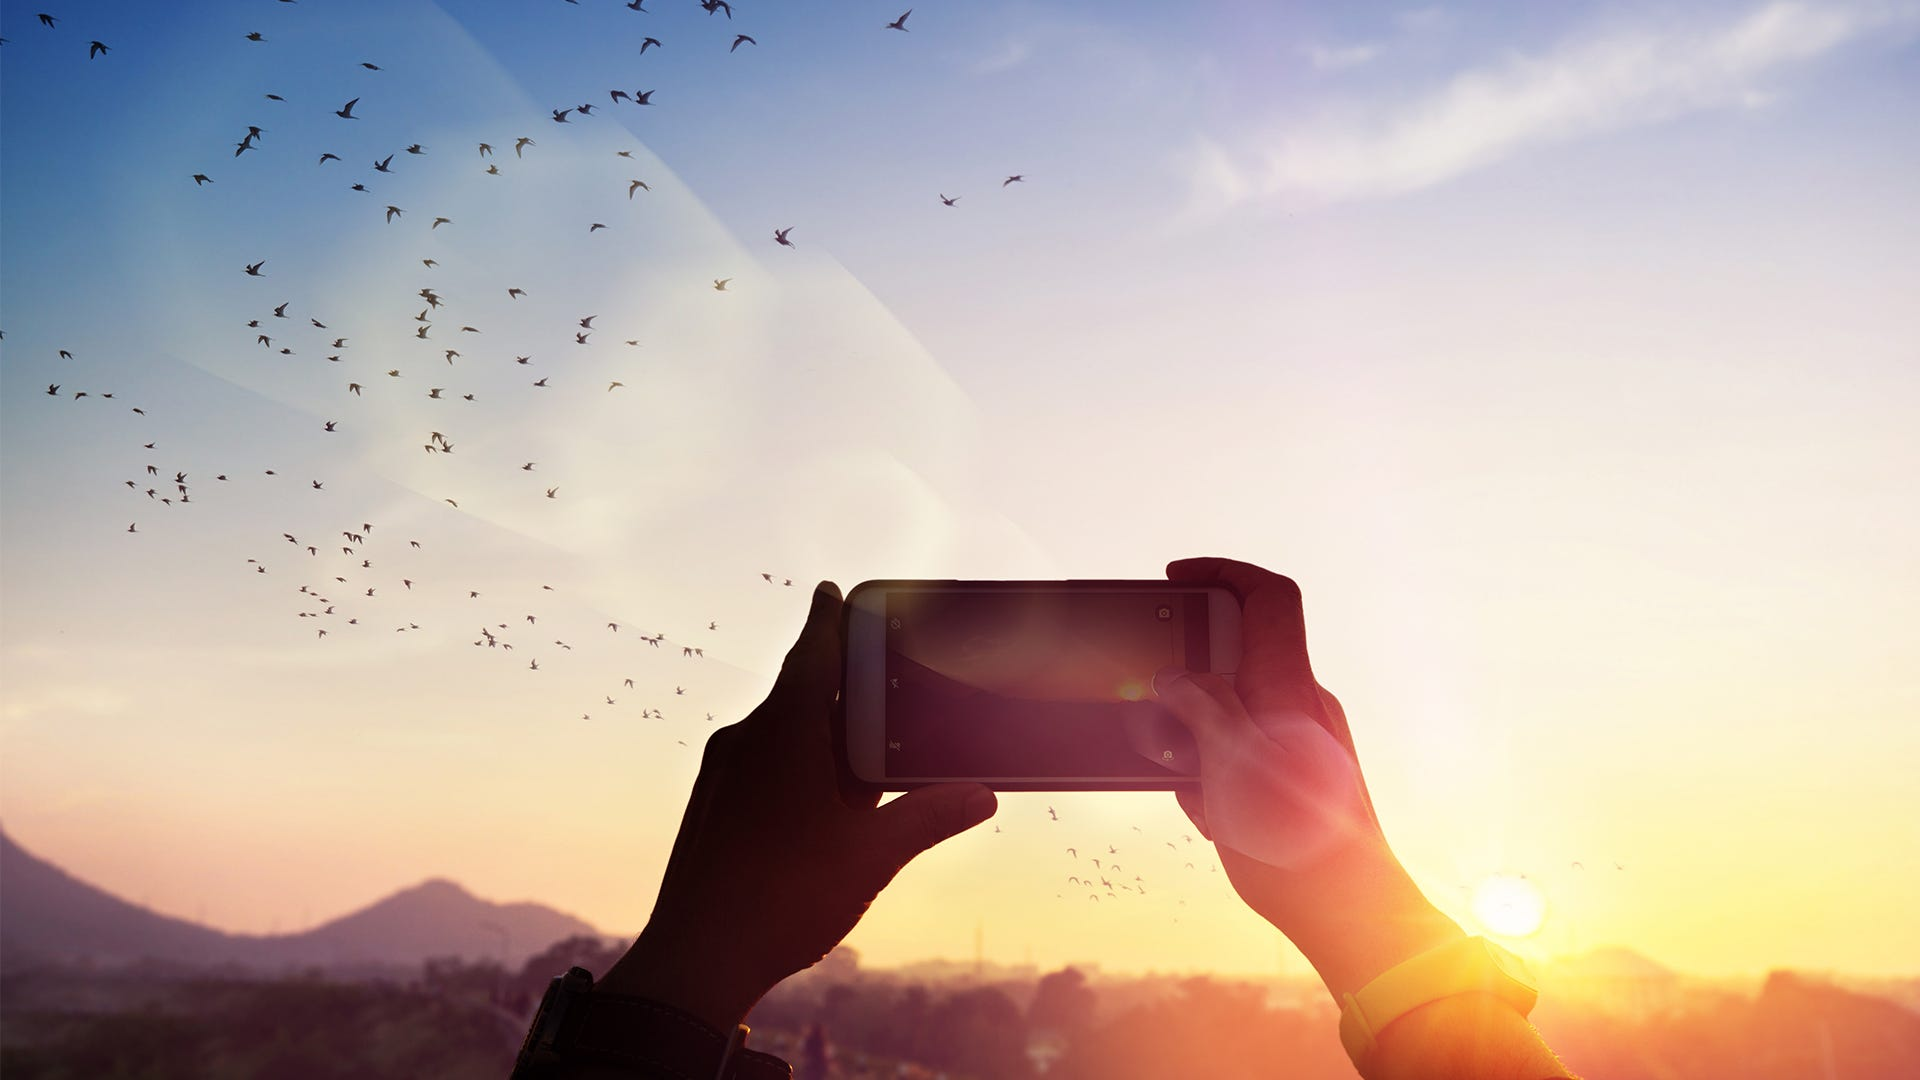 5 Tips for Taking Better Pictures of Birds with a Smartphone